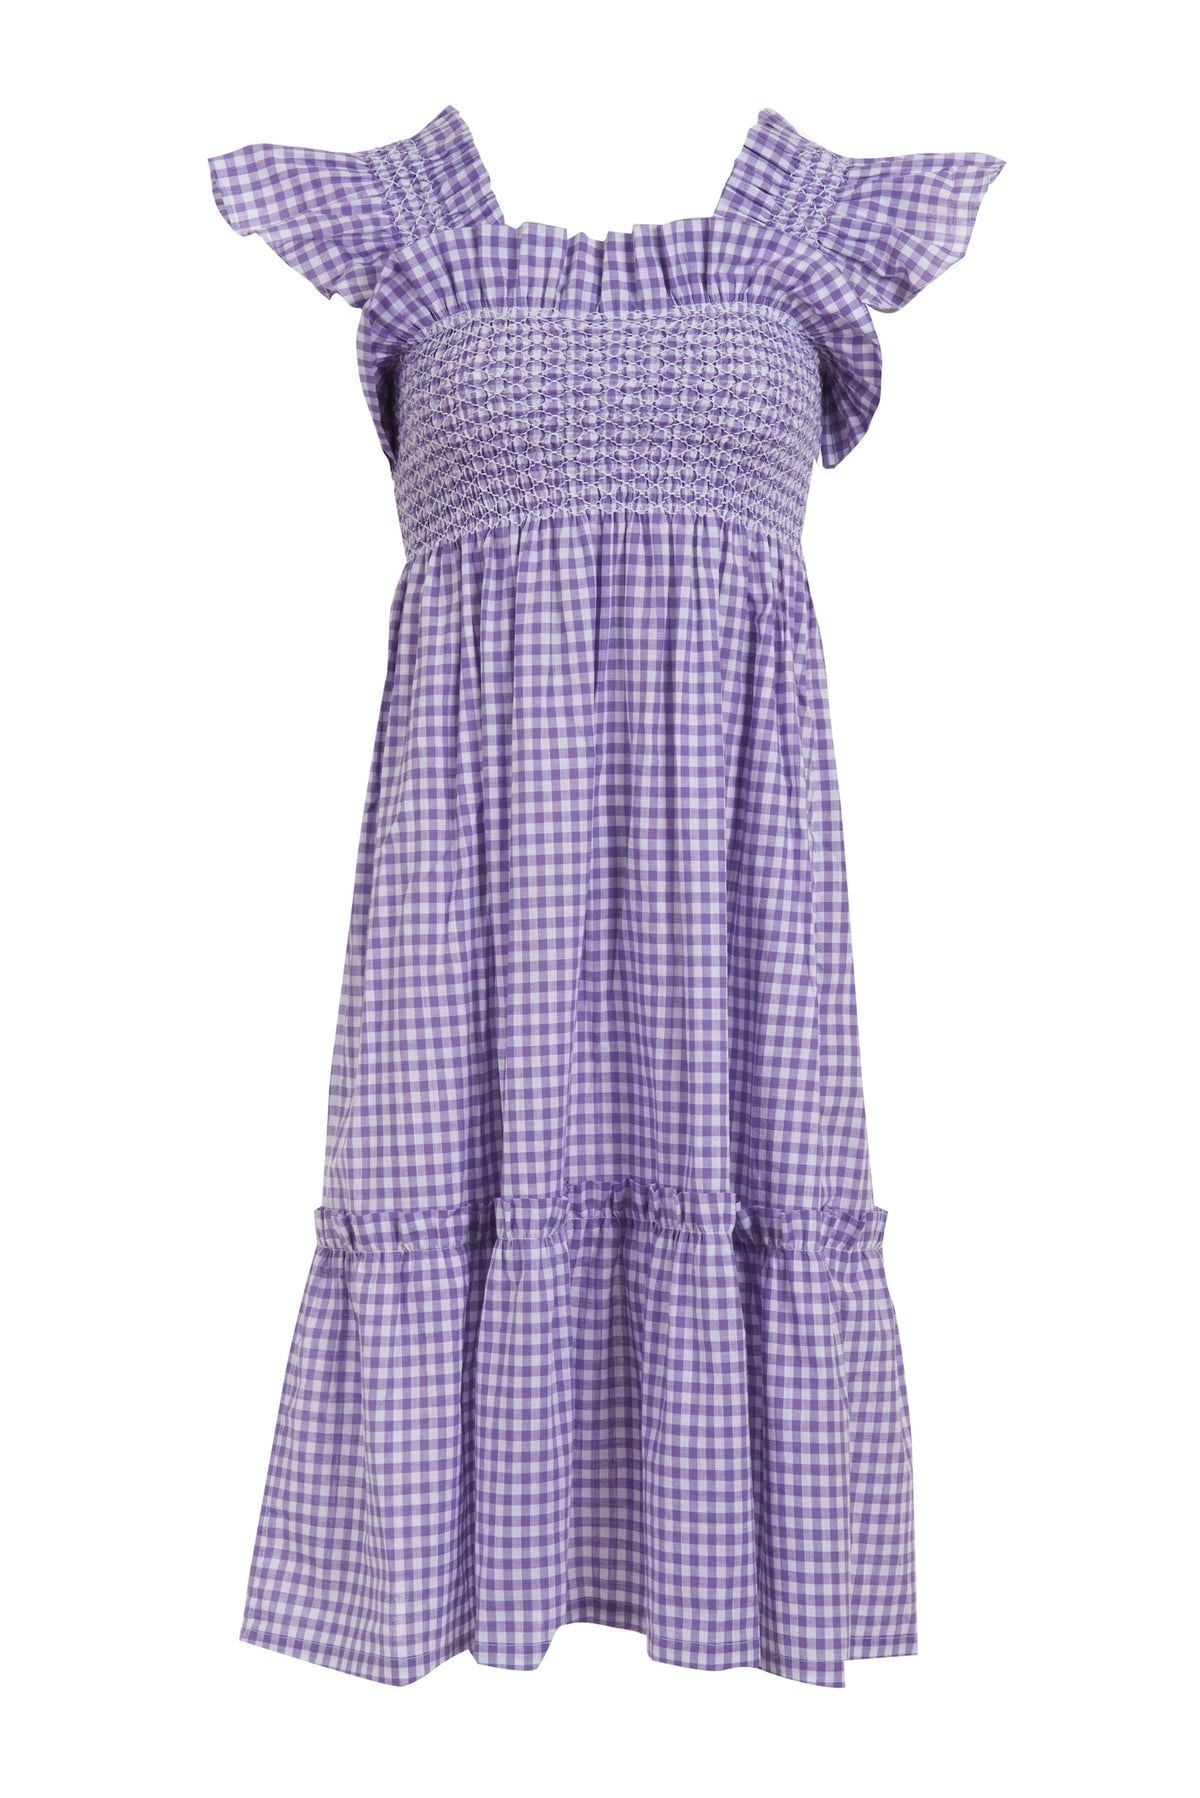 Lilac Gingham Queenie Dress